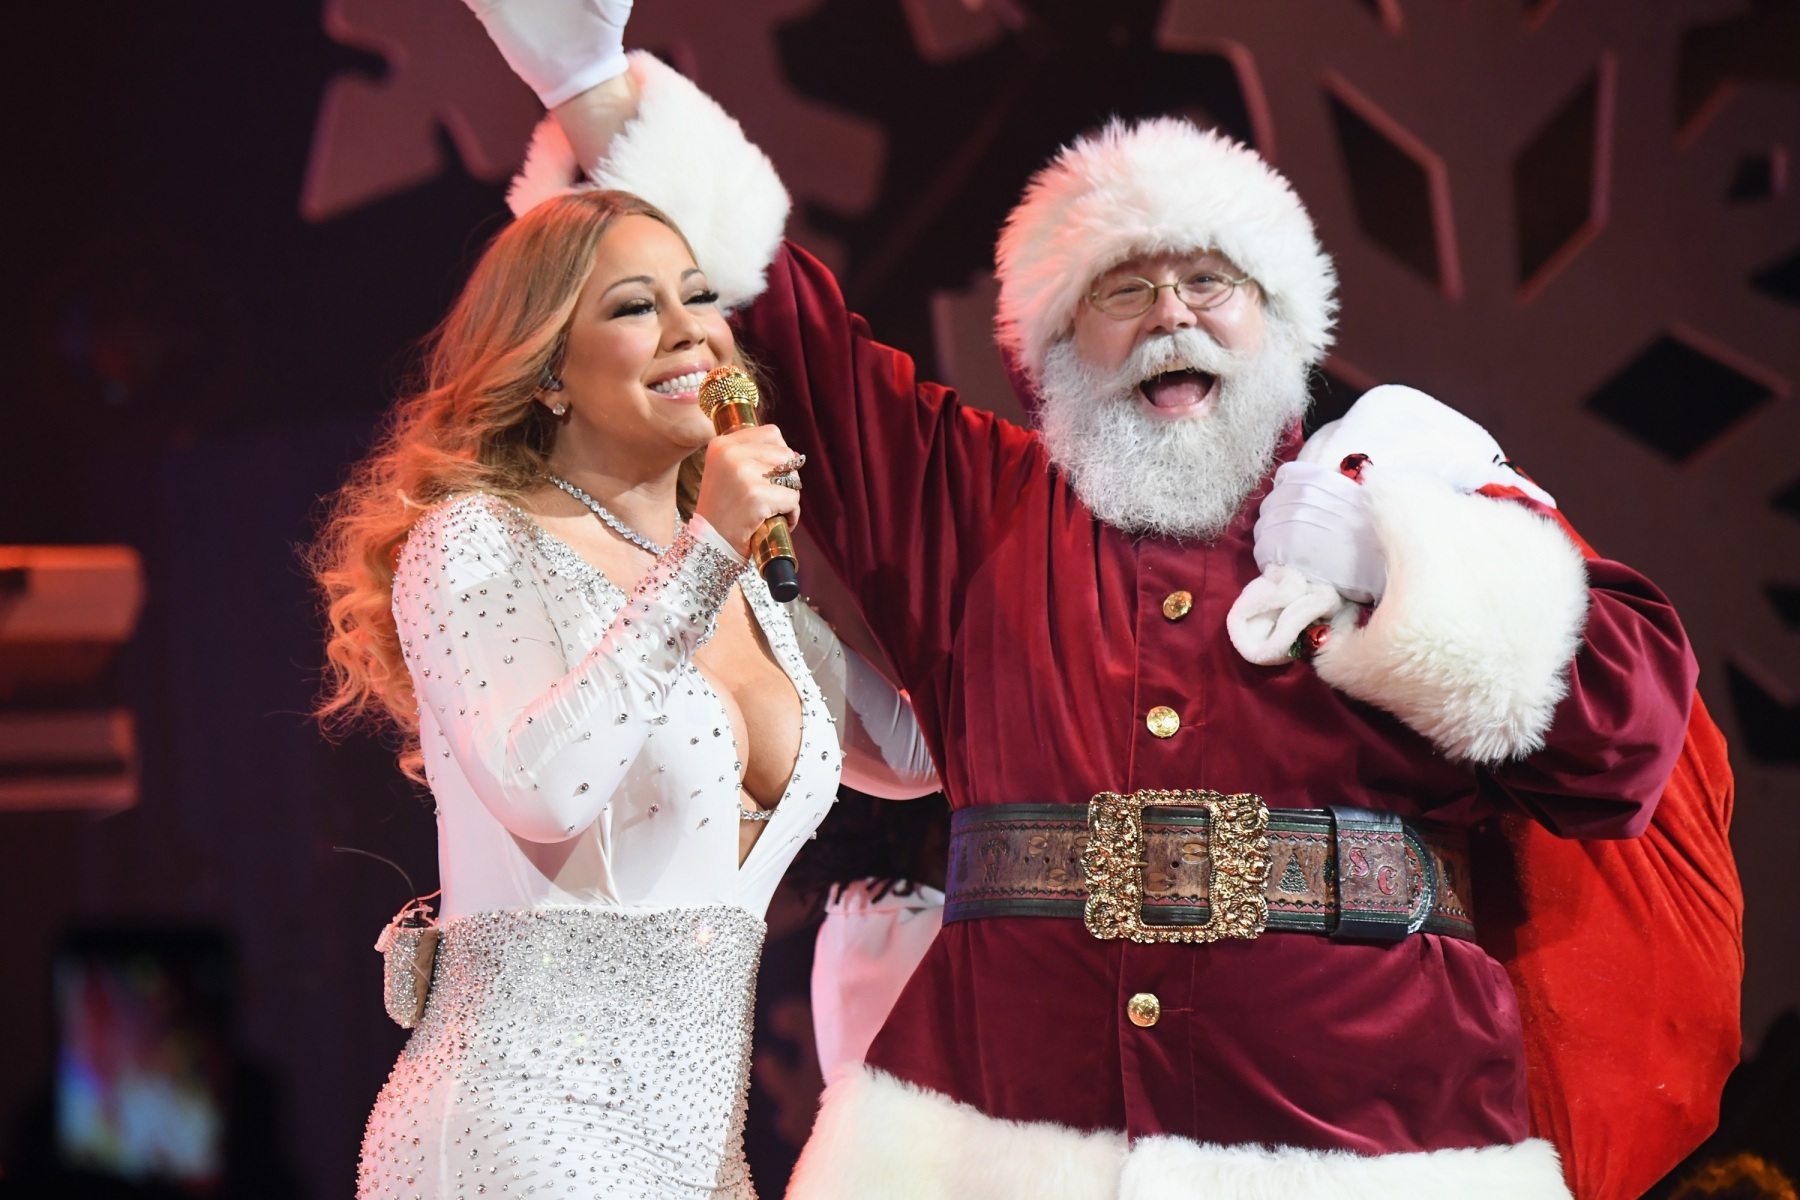 Mariah Carey Christmas.The Insane Amount Gifted To Mariah Carey And The Pogues